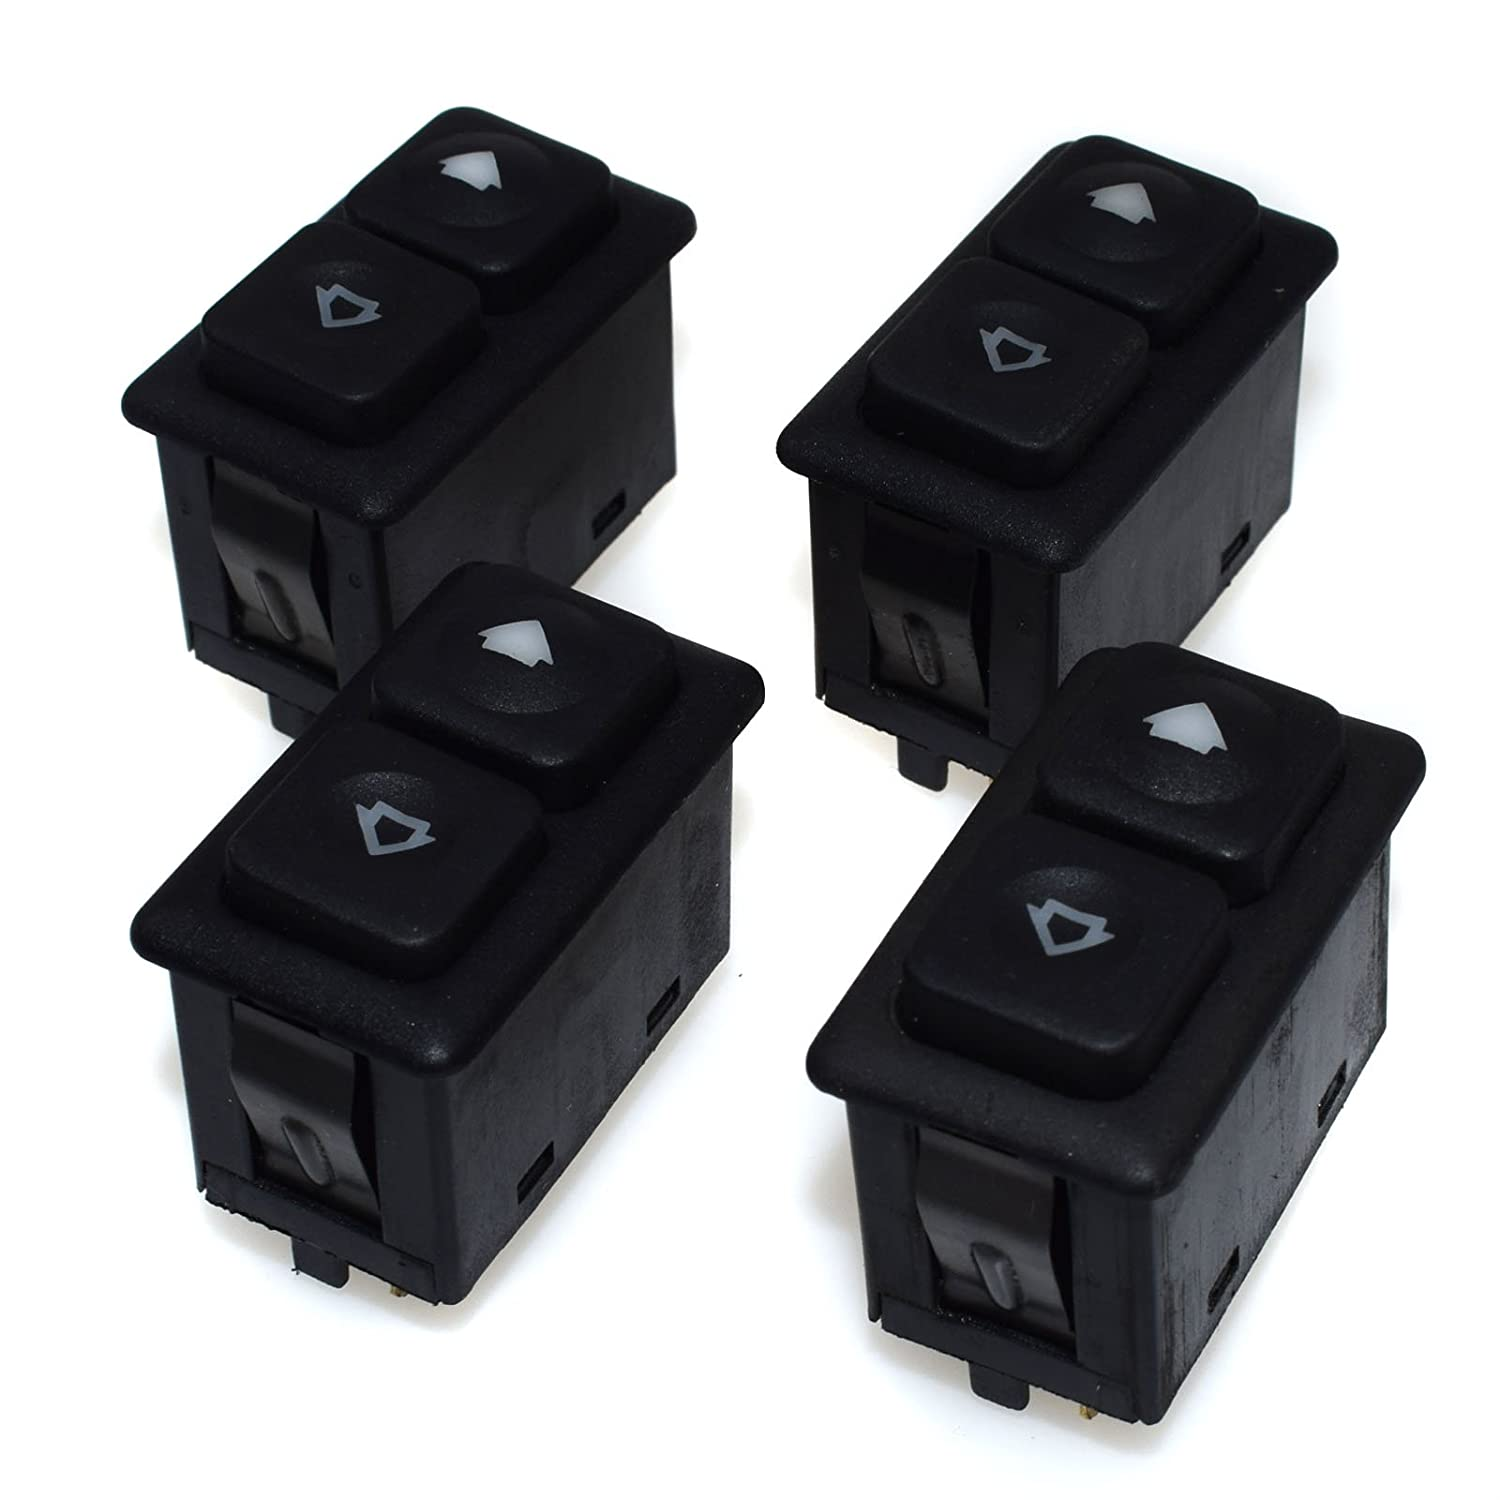 New 4PCS Power Window Sunroof Switch Illuminated 61311381205/61 31 1 381 205 For BMWS E30 E24 E28 from 09/1986 eGang Auto